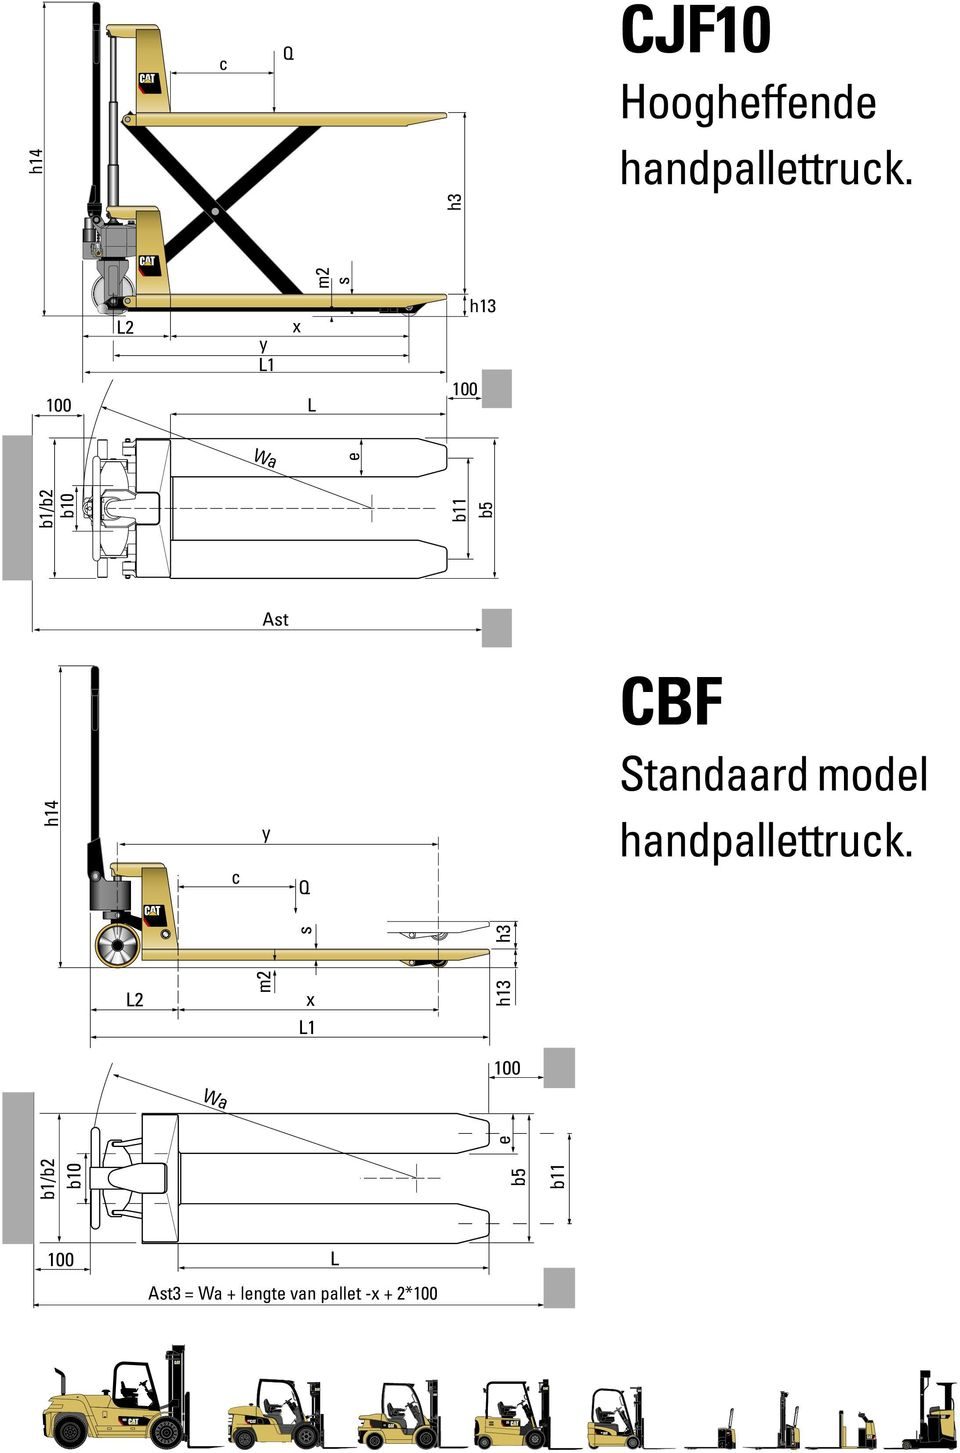 y Q CBF Standaard model handpallettruck.